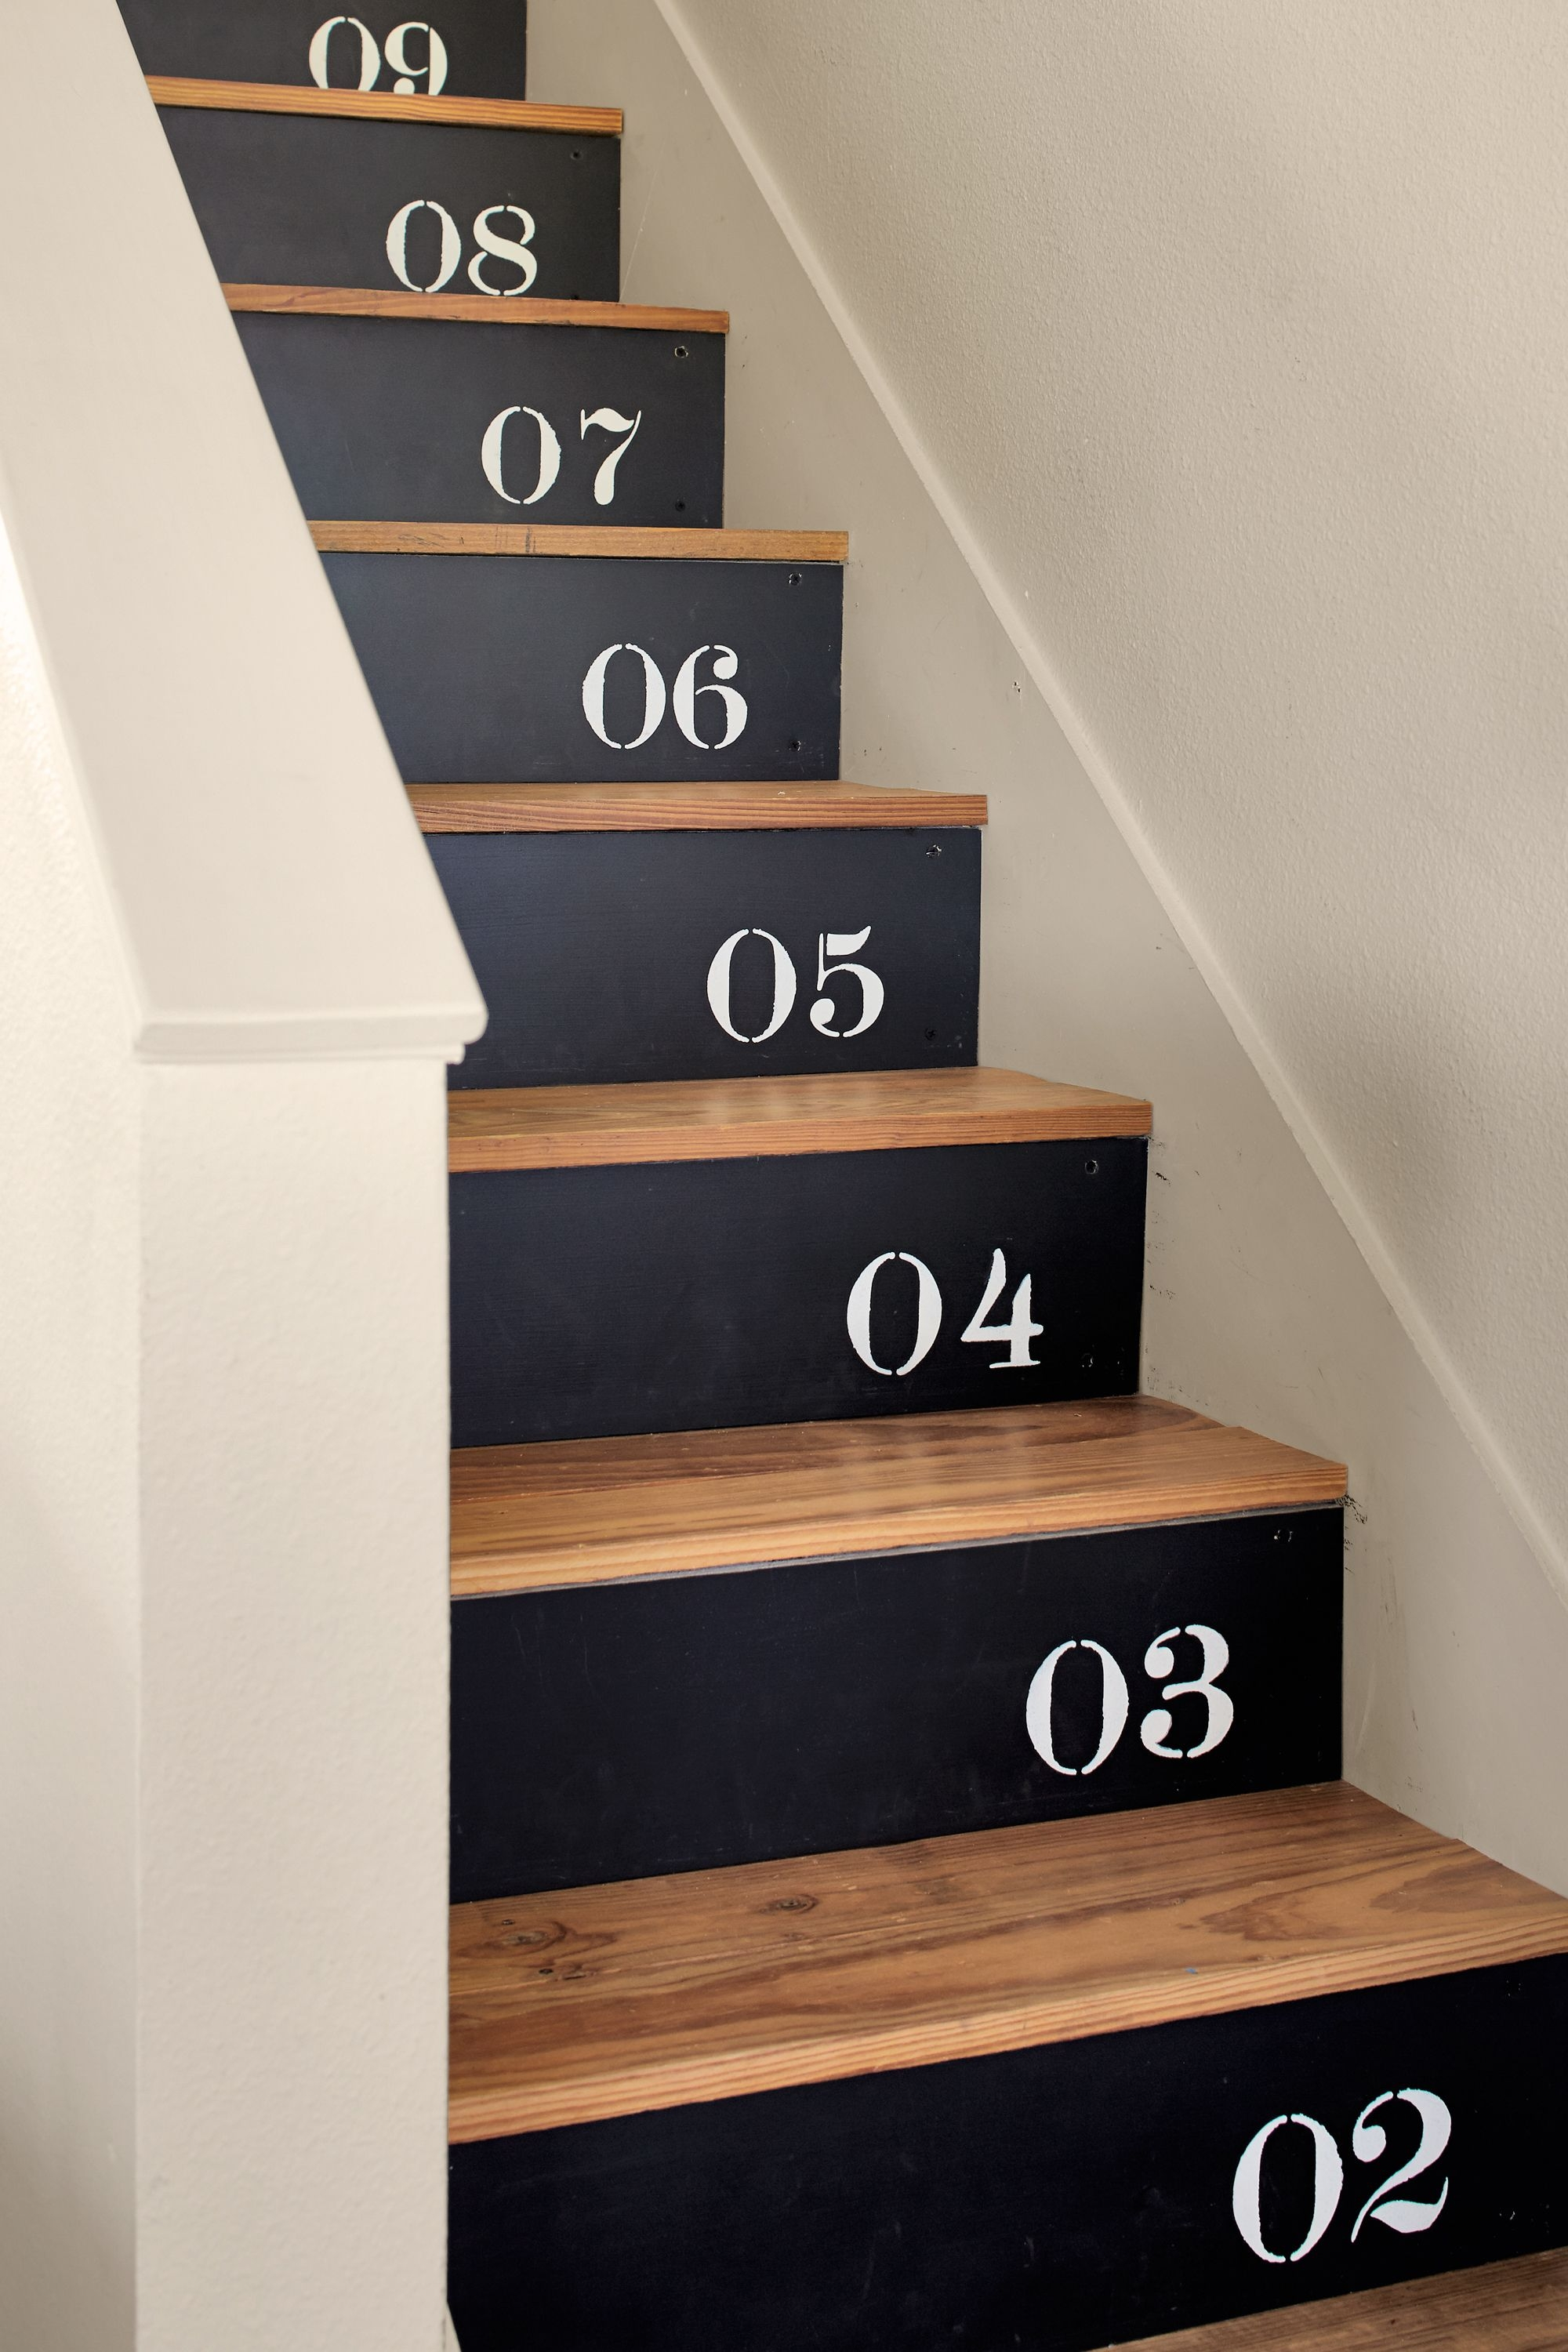 18 Pretty Painted Stairs How To Paint Stair Rails Risers And More | Tile Risers On Wood Stairs | Stair Tread | Decorative | Wood Finish | Stair Outdoors | Wooden